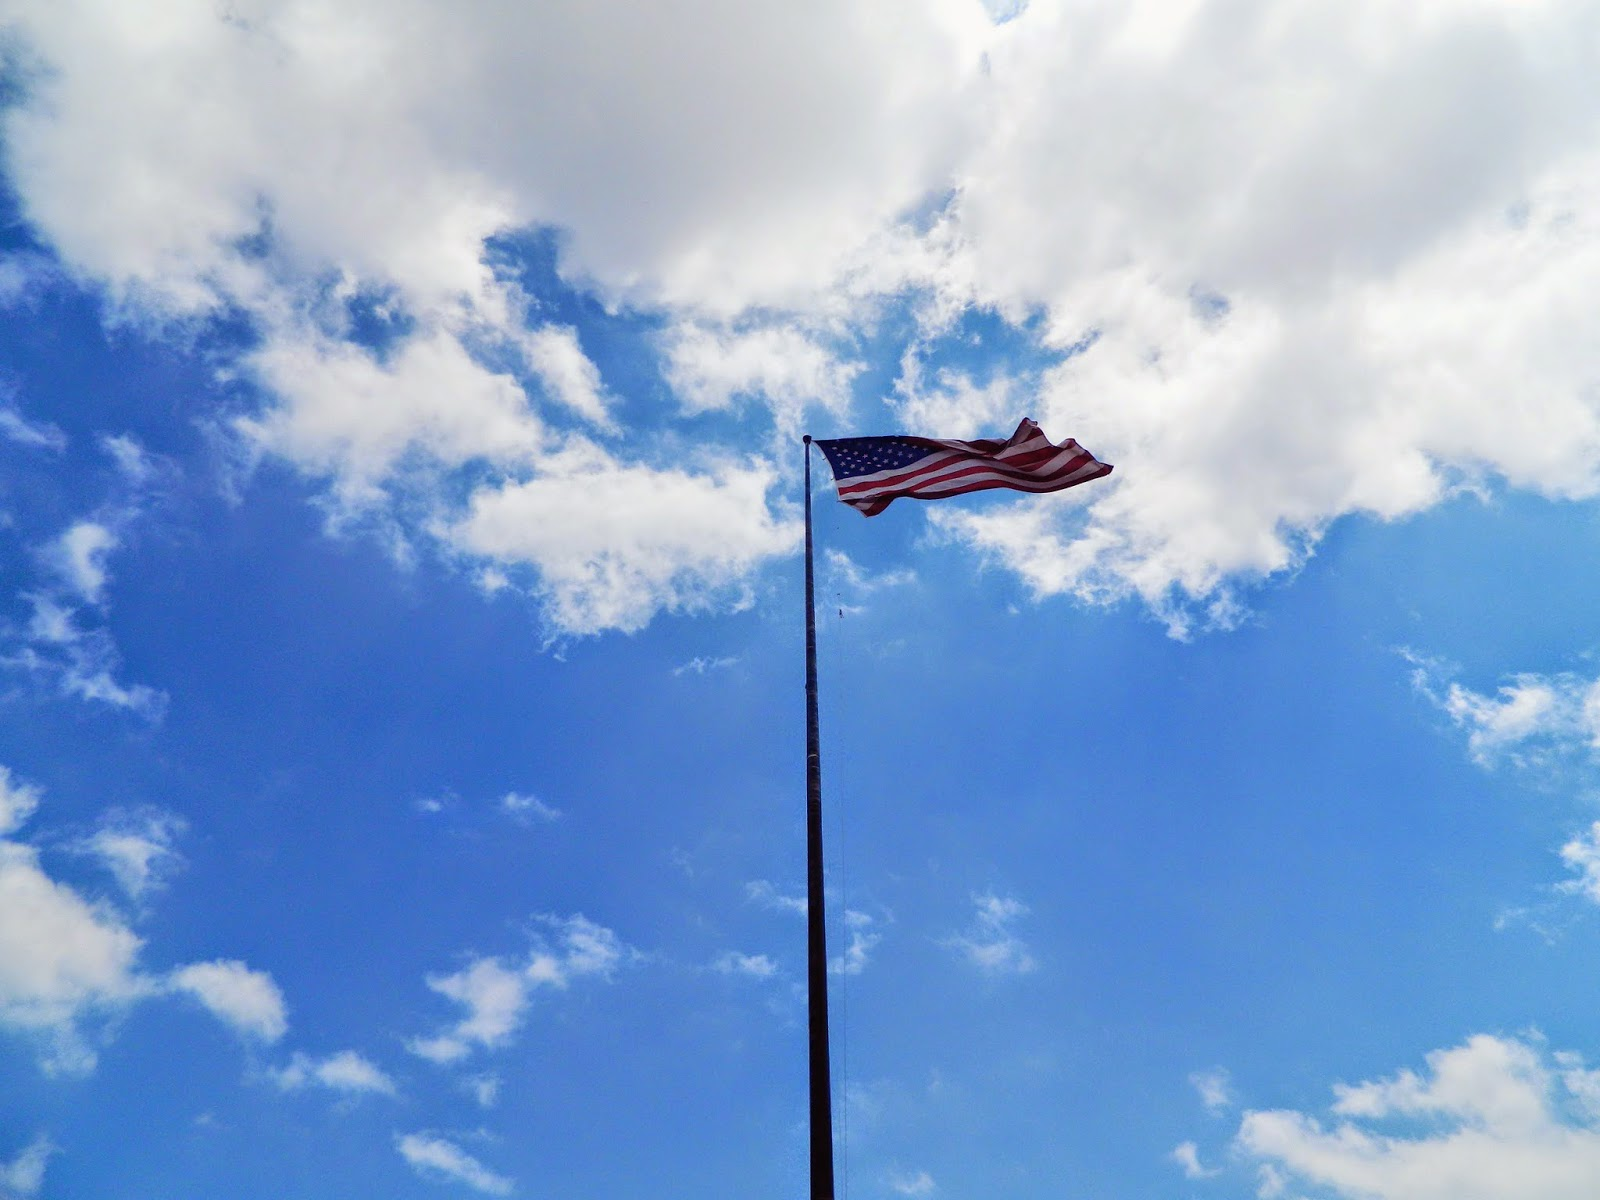 new york city american flag flying wind sky clouds